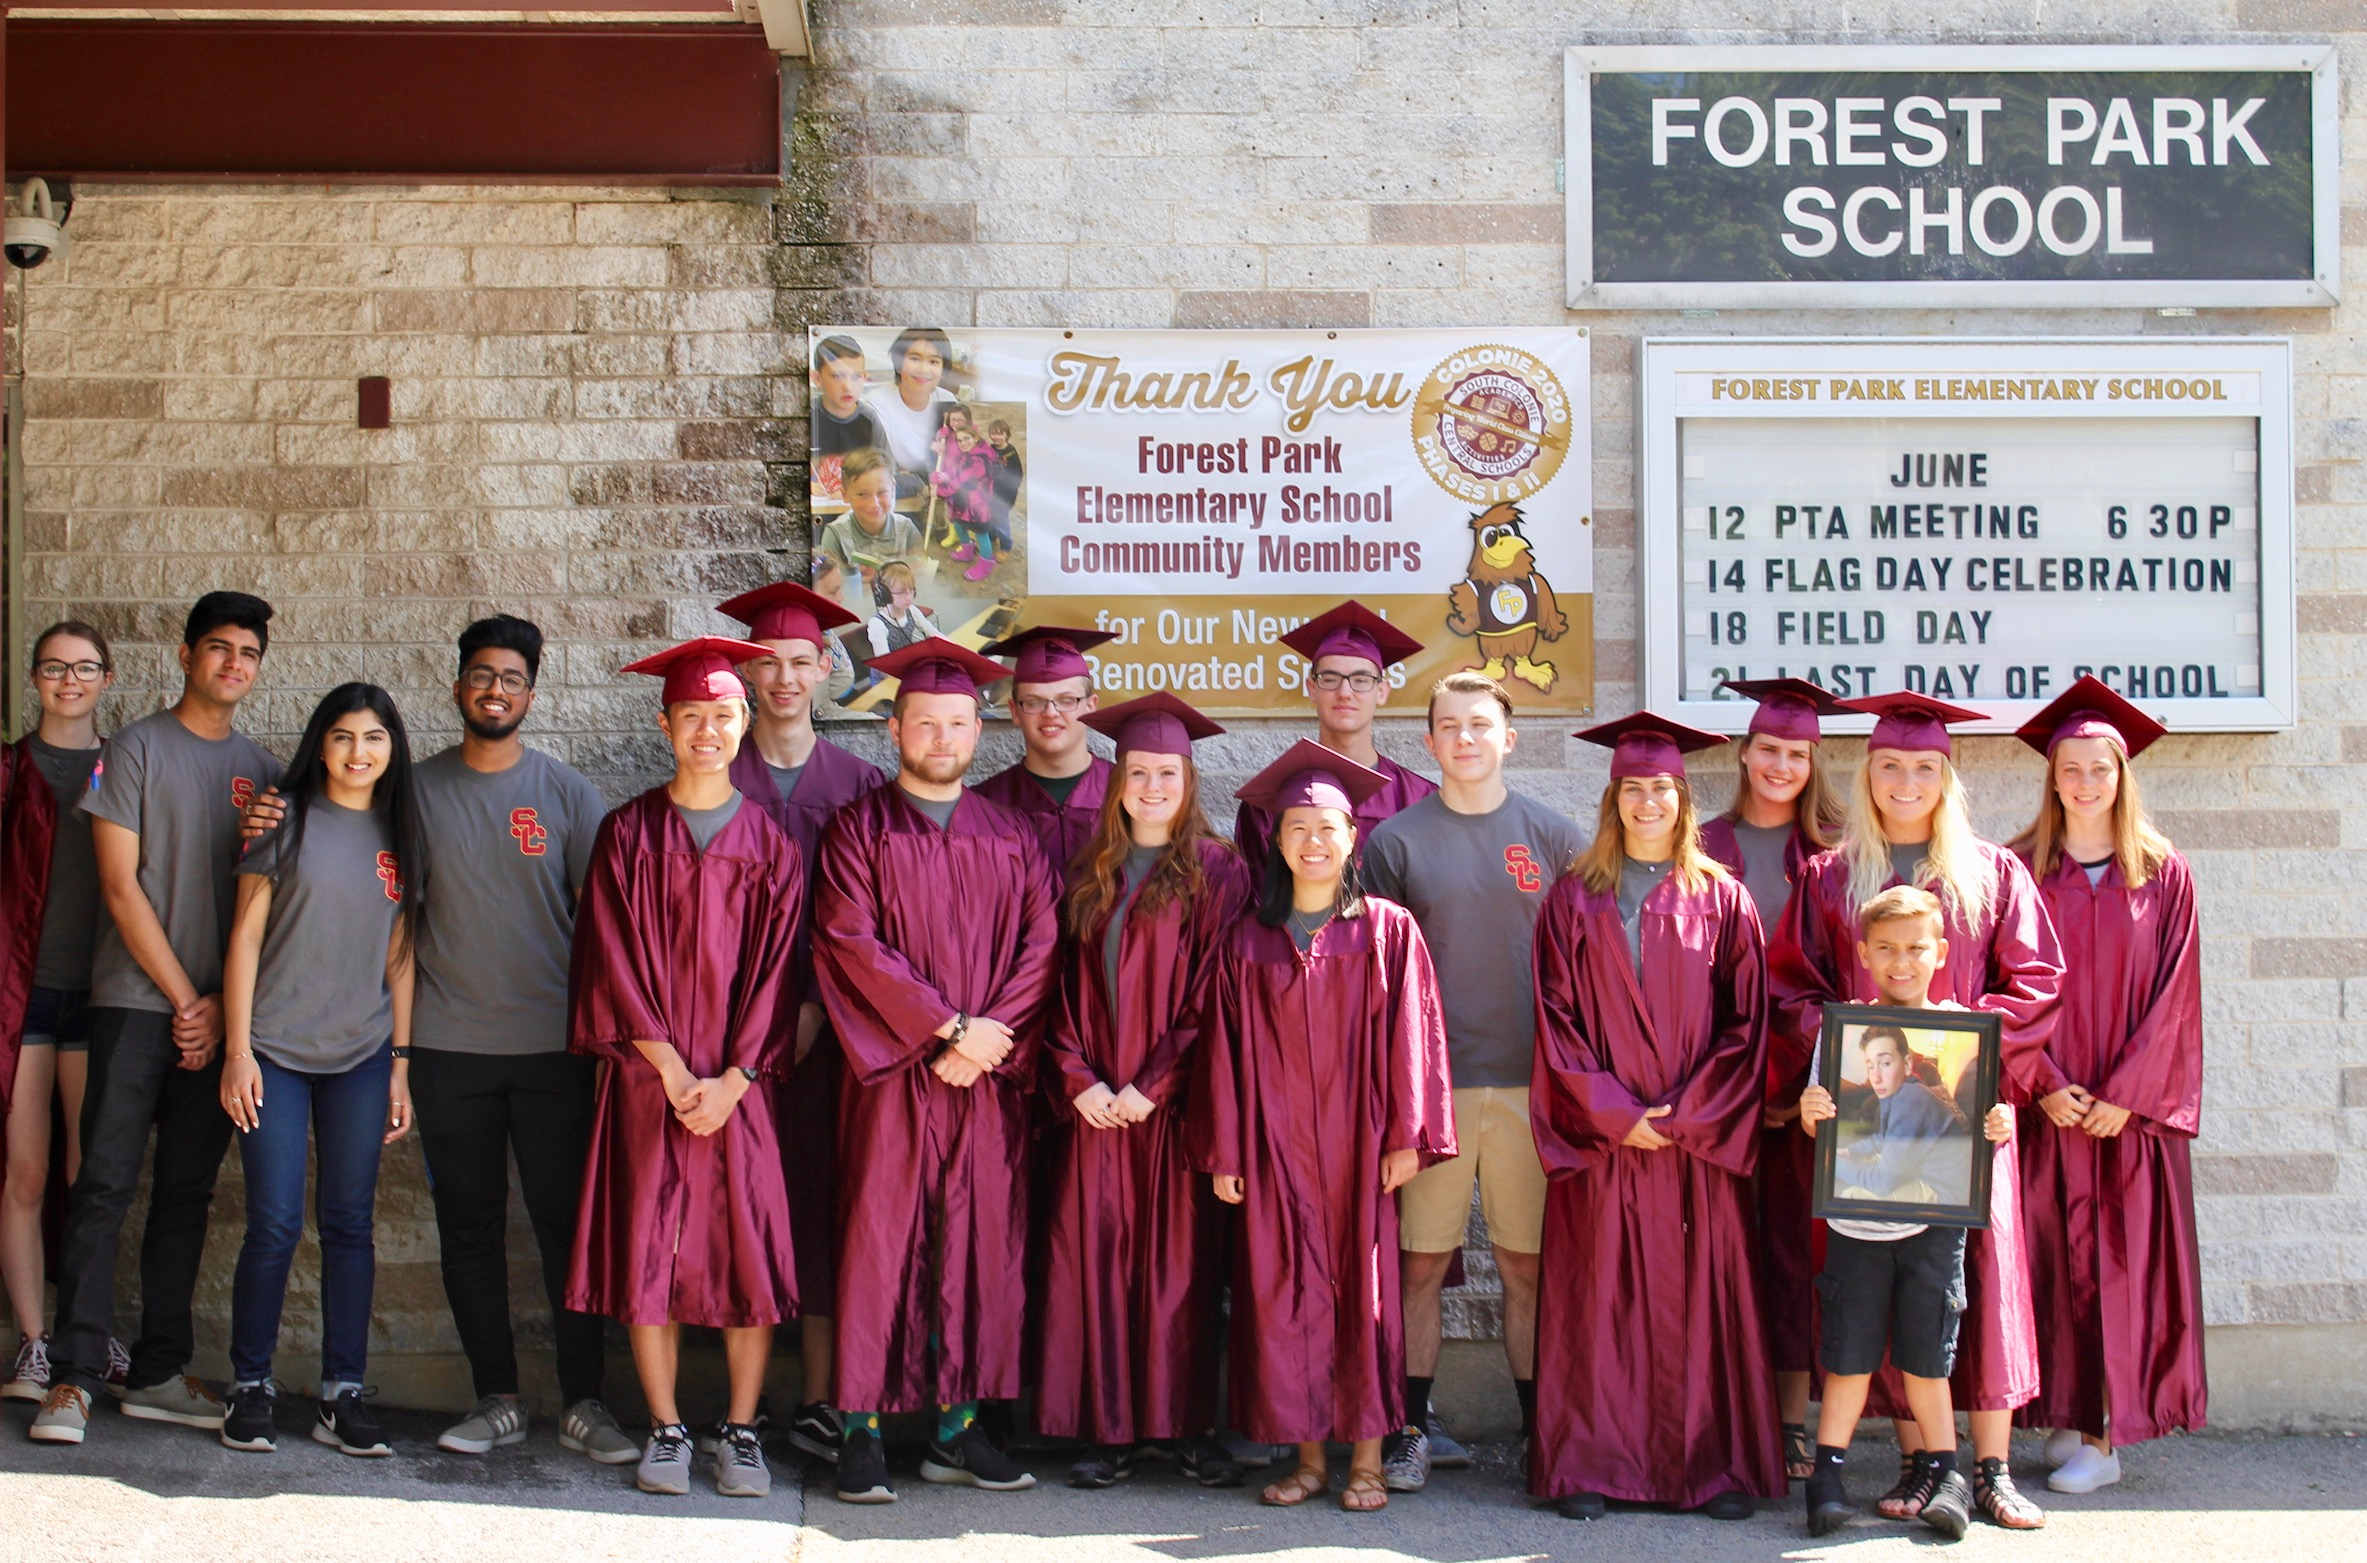 class of 2018 graduates pose as a group in their caps and gowns outside forest park school